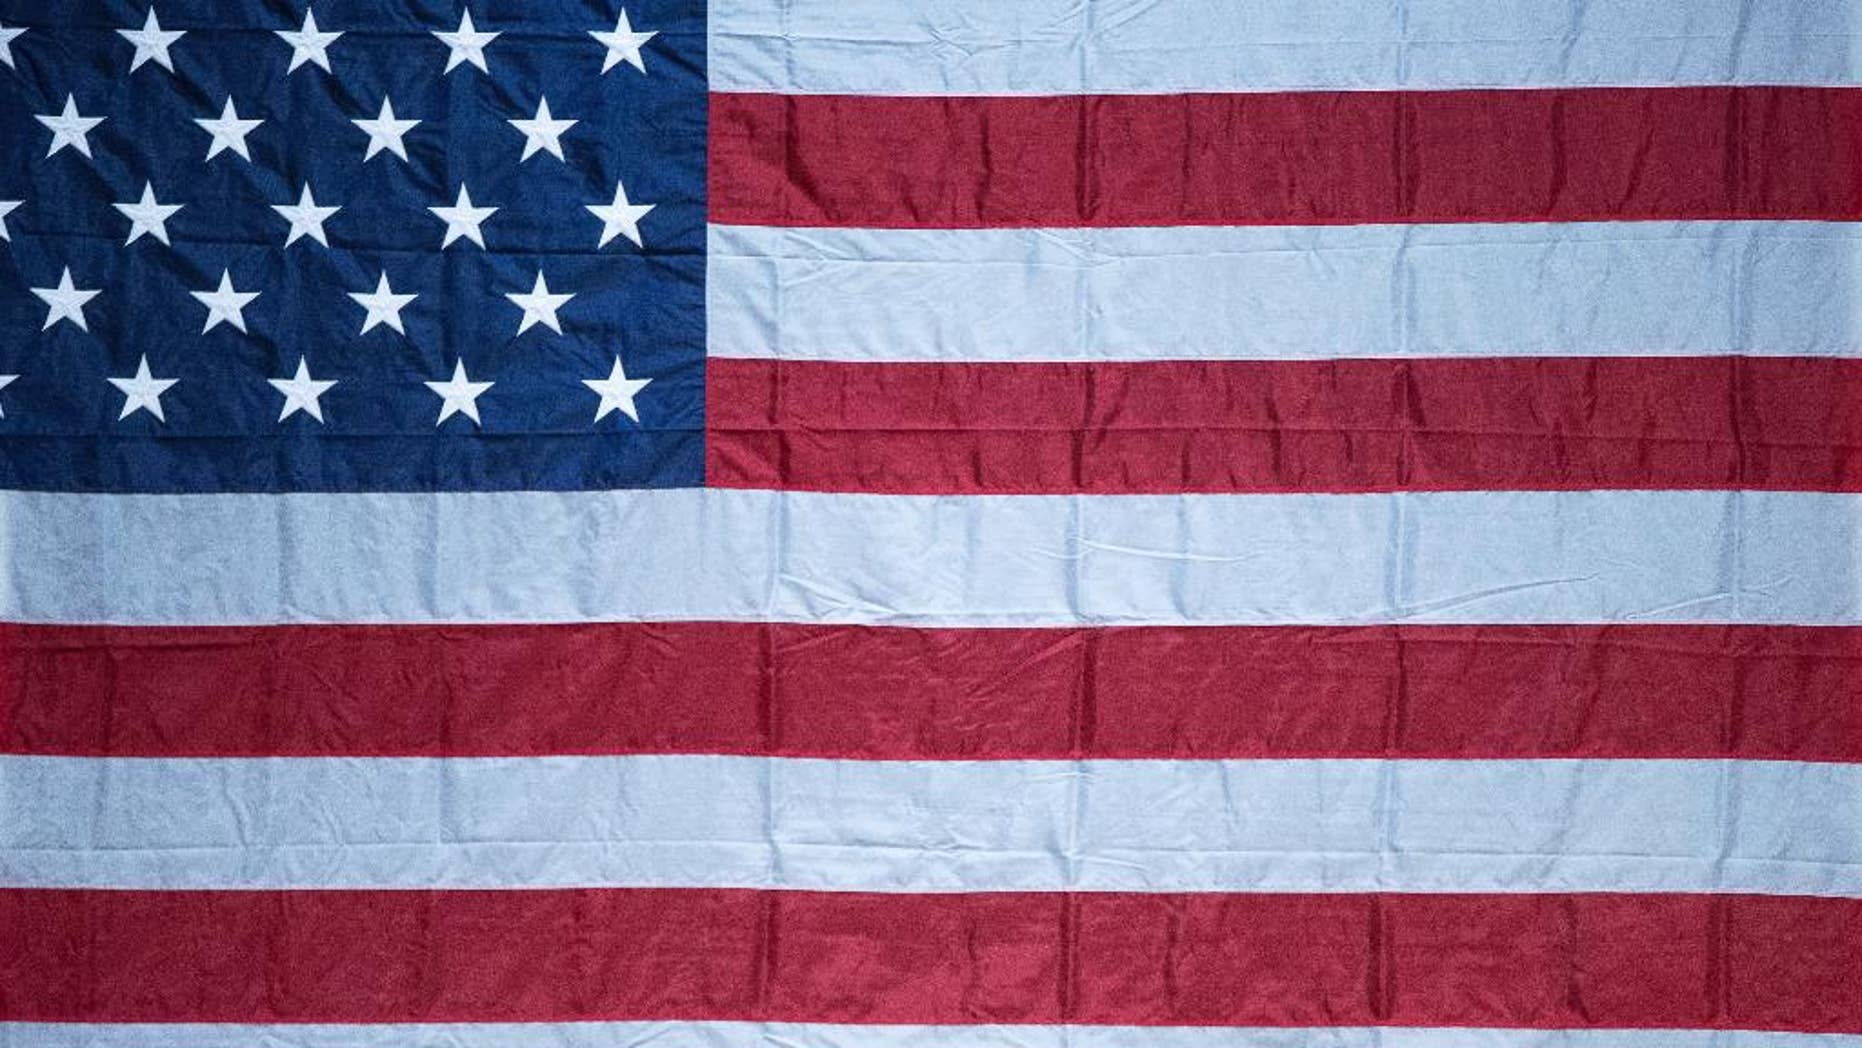 A man sticks his head out from under a large American flag as Democratic presidential candidate Hillary Clinton finishes a rally at Miami Dade College in Miami, Tuesday, Oct. 11, 2016. (AP Photo/Andrew Harnik)